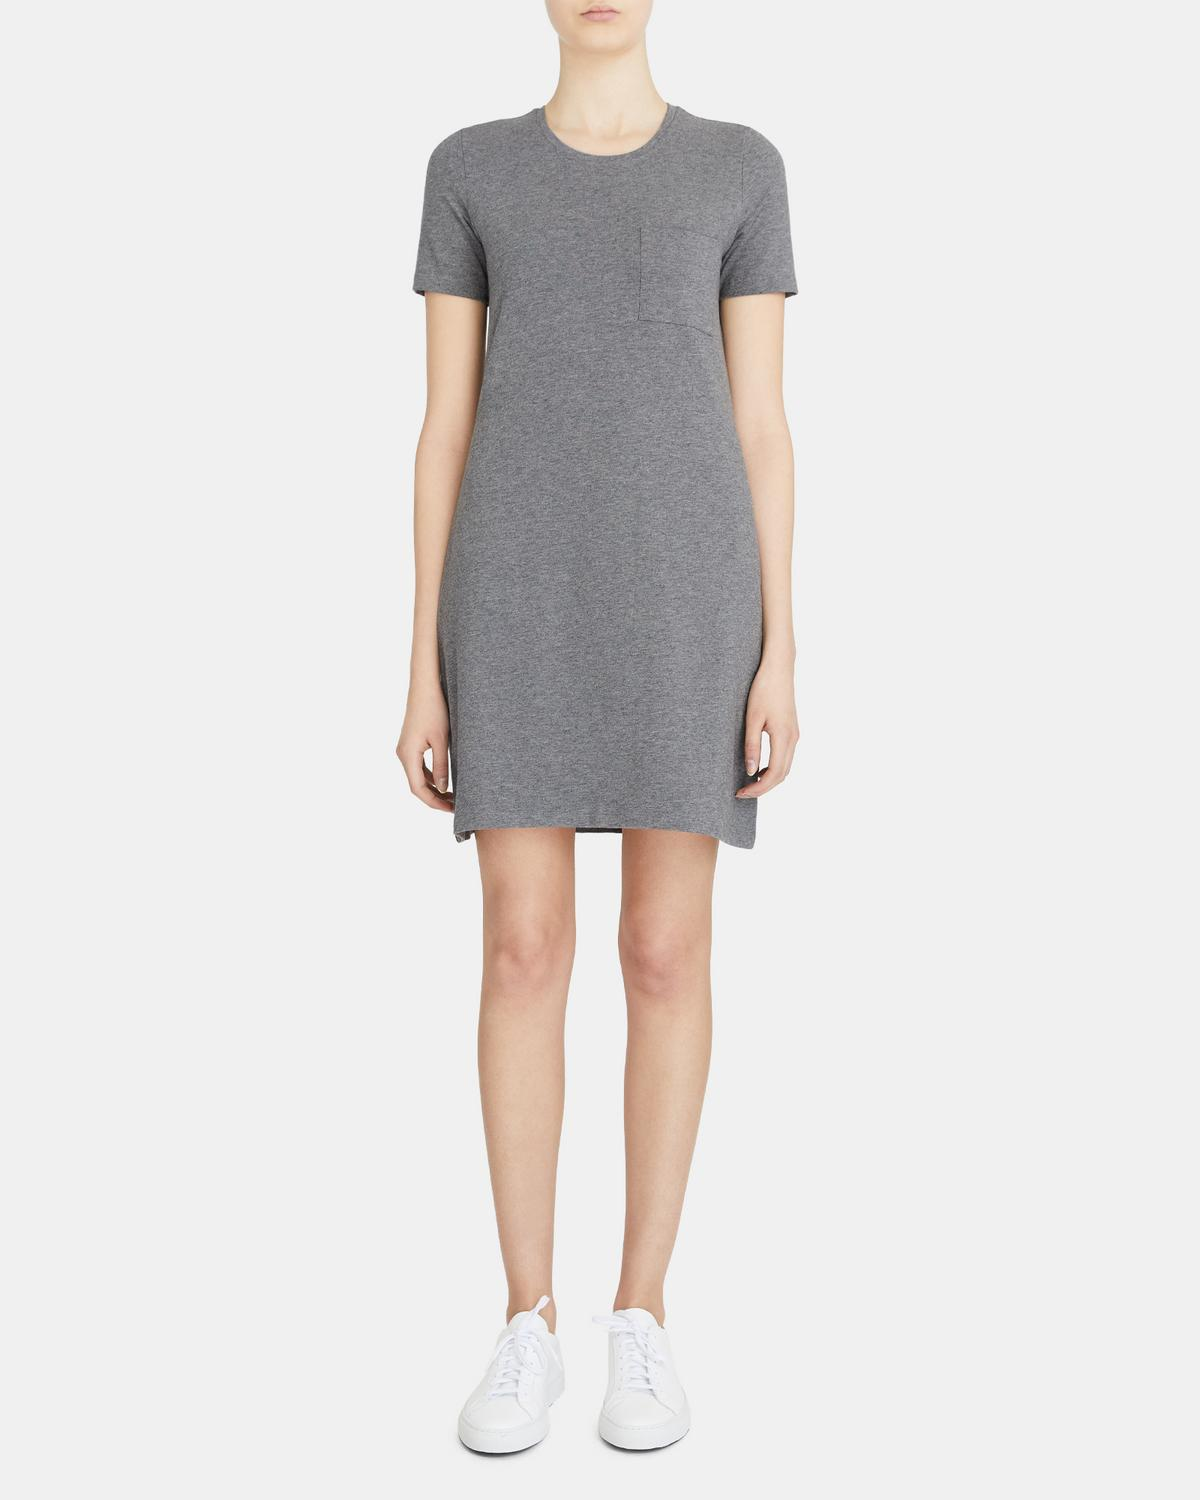 T-Shirt Dress in Mélange Stretch Cotton